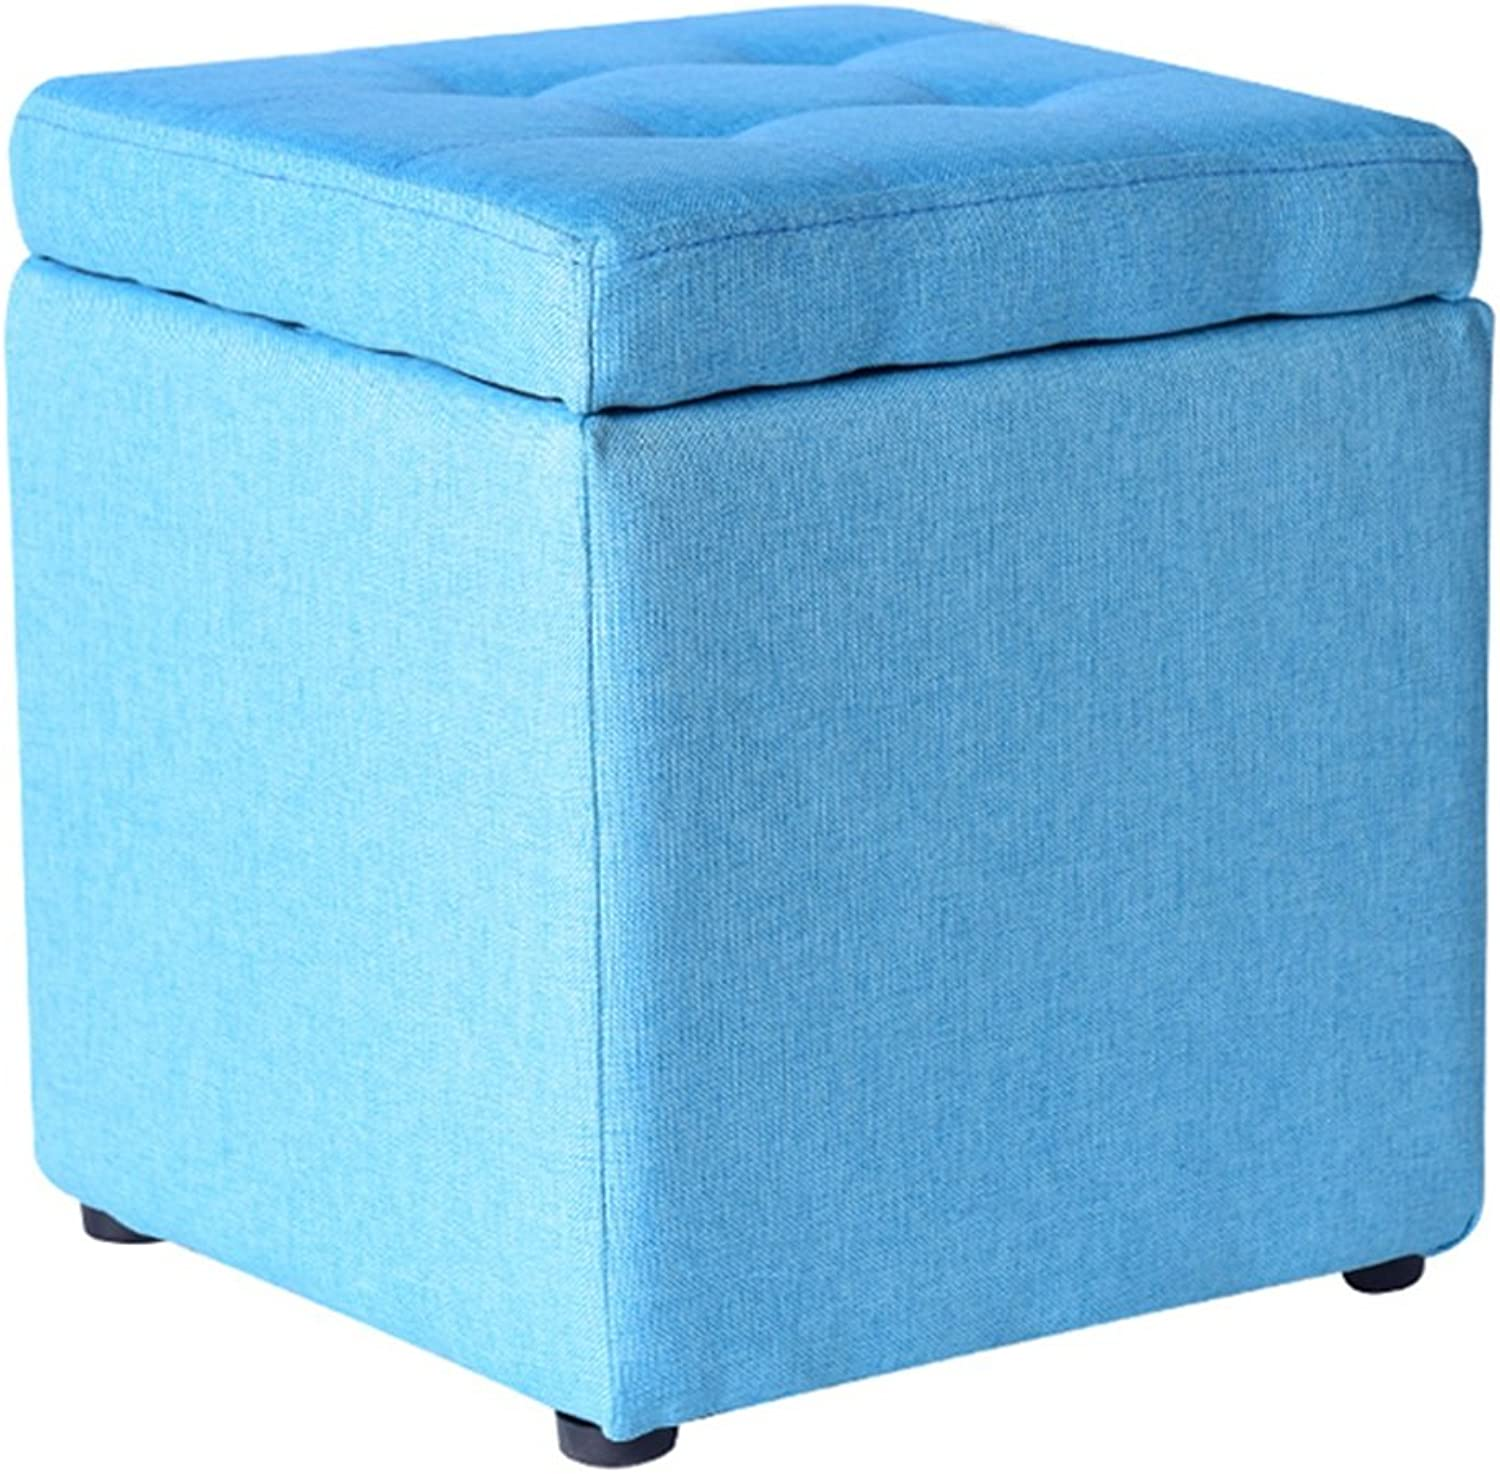 Byx- Cloth Art Storage Stool shoes Bench Foyer Sofa Stool Living Room Fitting Room Bedroom Dressing Table Shopping Mall shoes Store Footstool,30  30  35cm -Footstool with Storage (color   Light bluee)